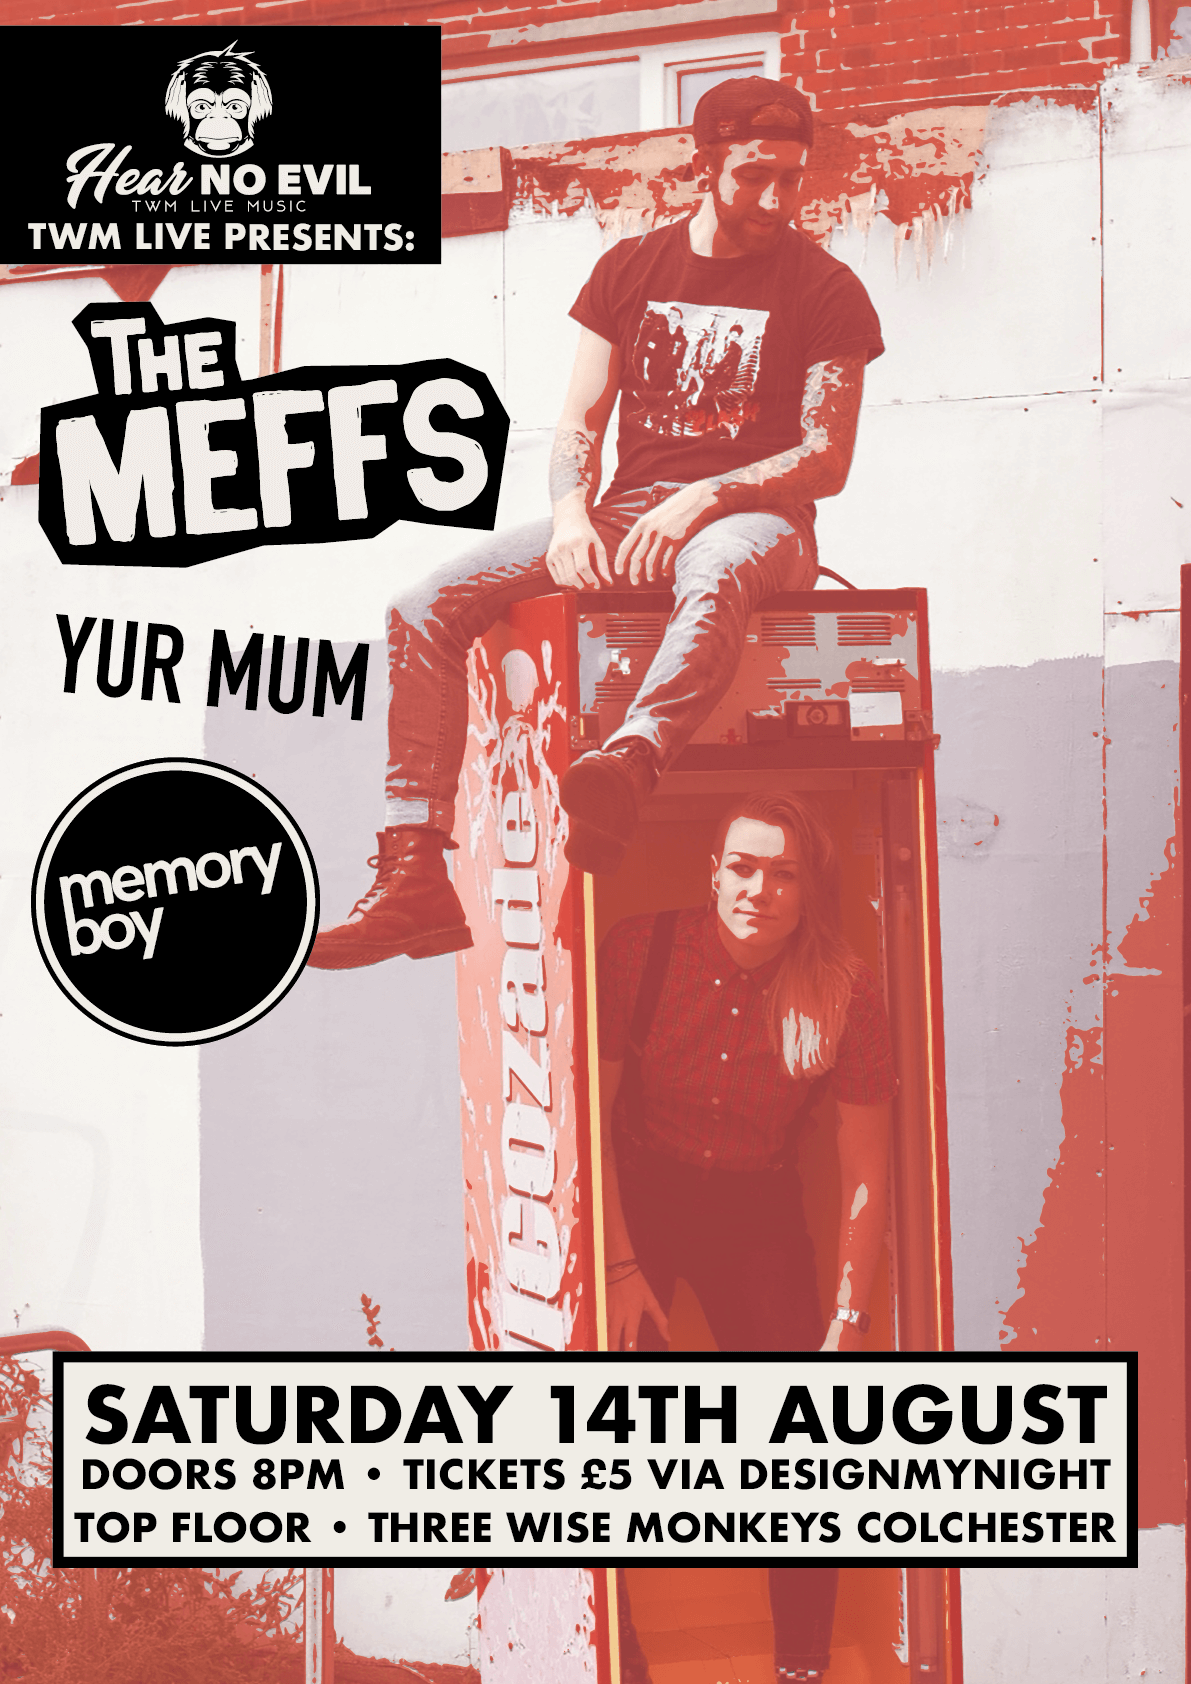 The Meffs Poster